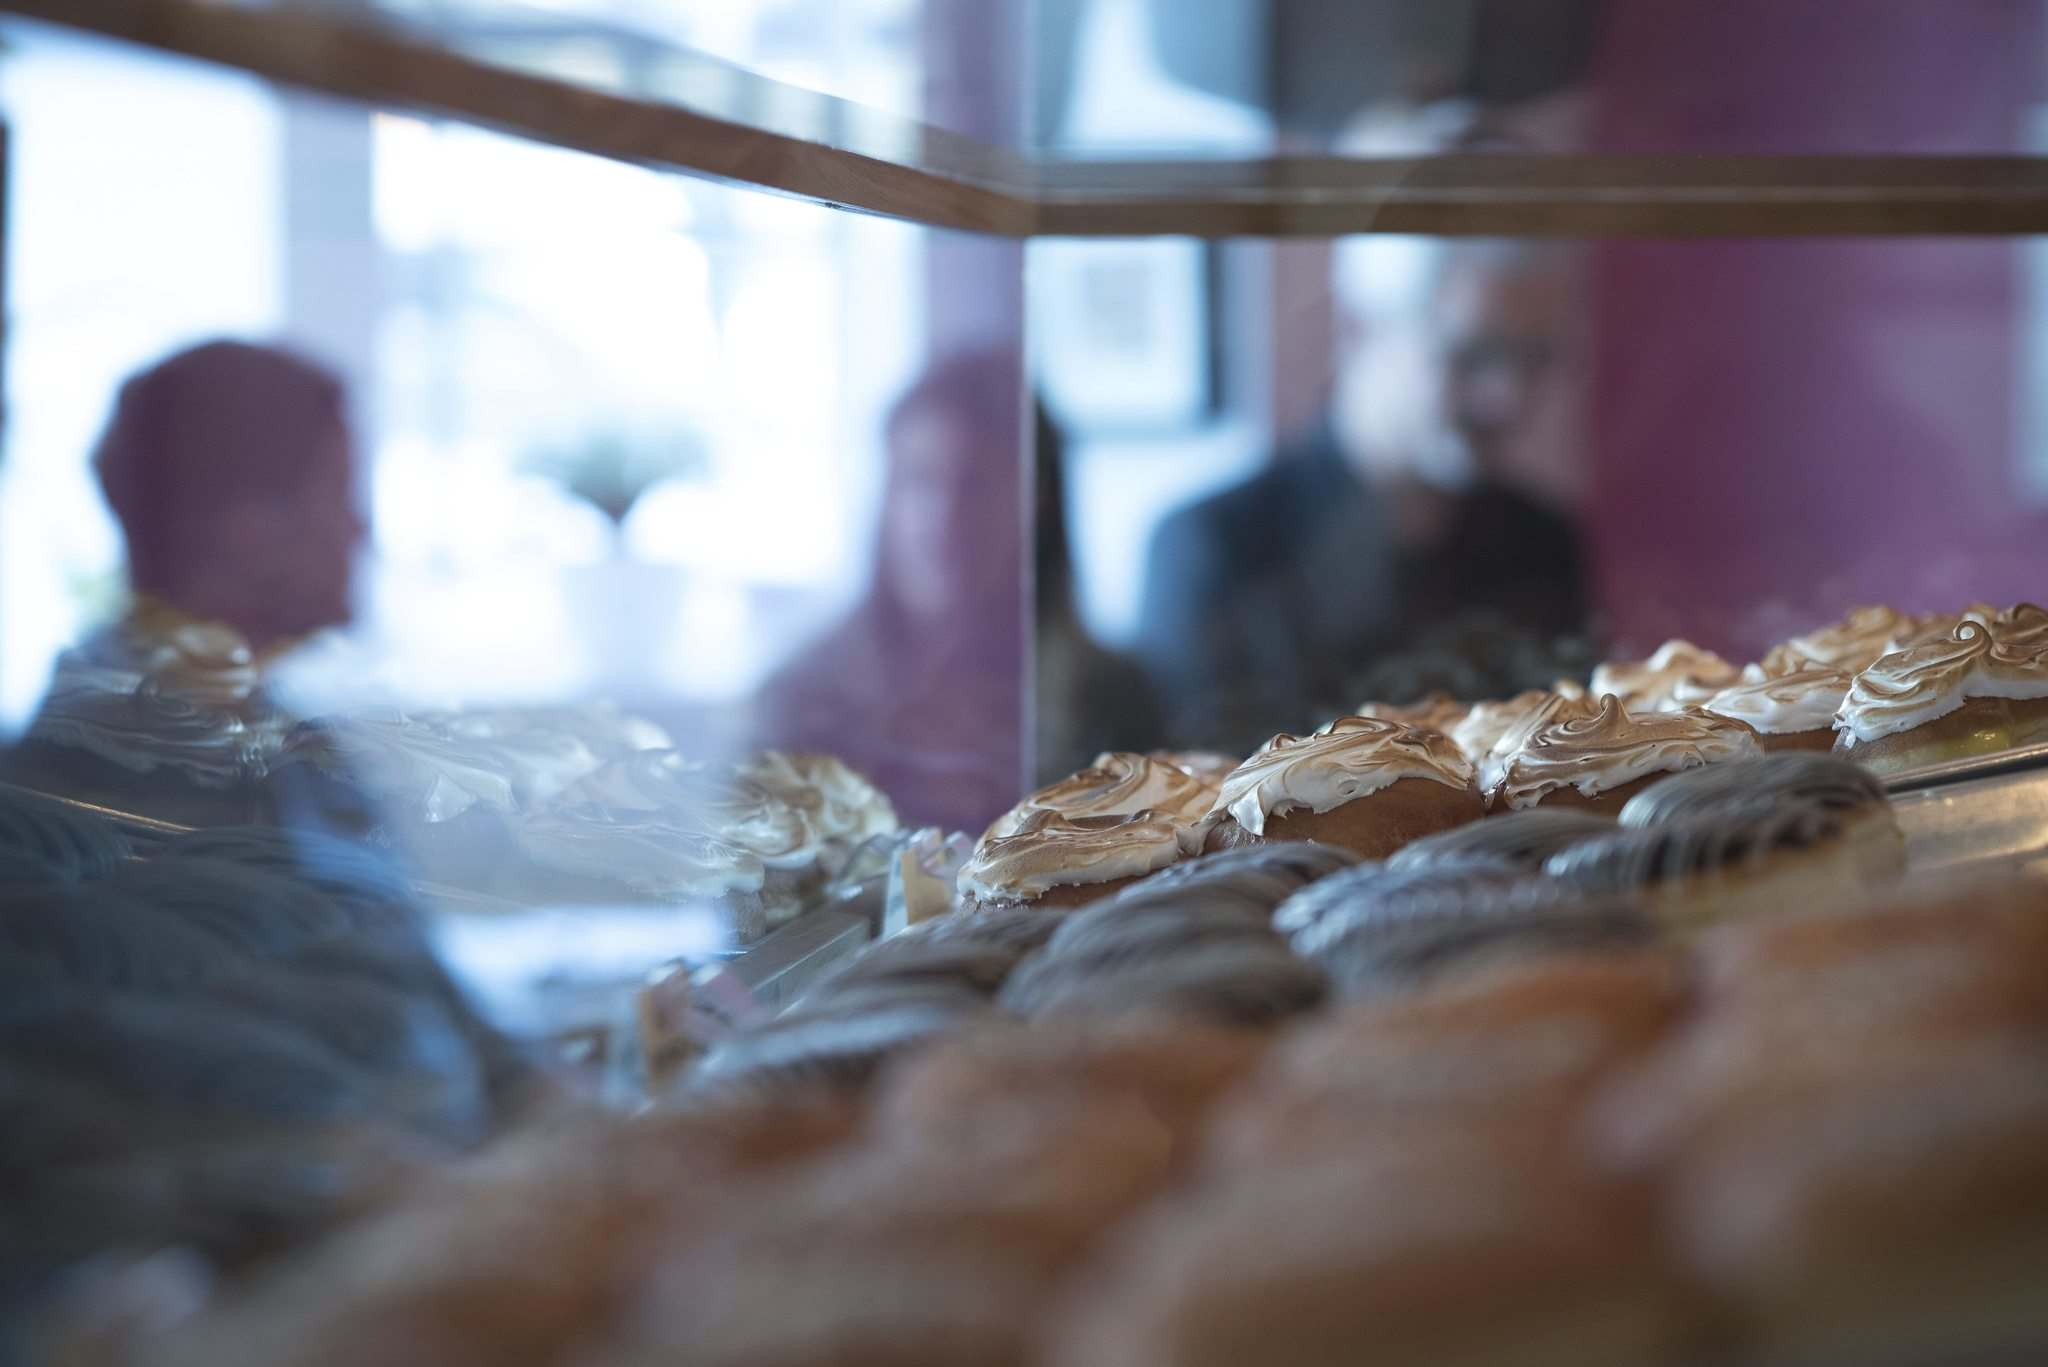 Doughnuts, like design, engage community with form and function. (David Moder Photography)